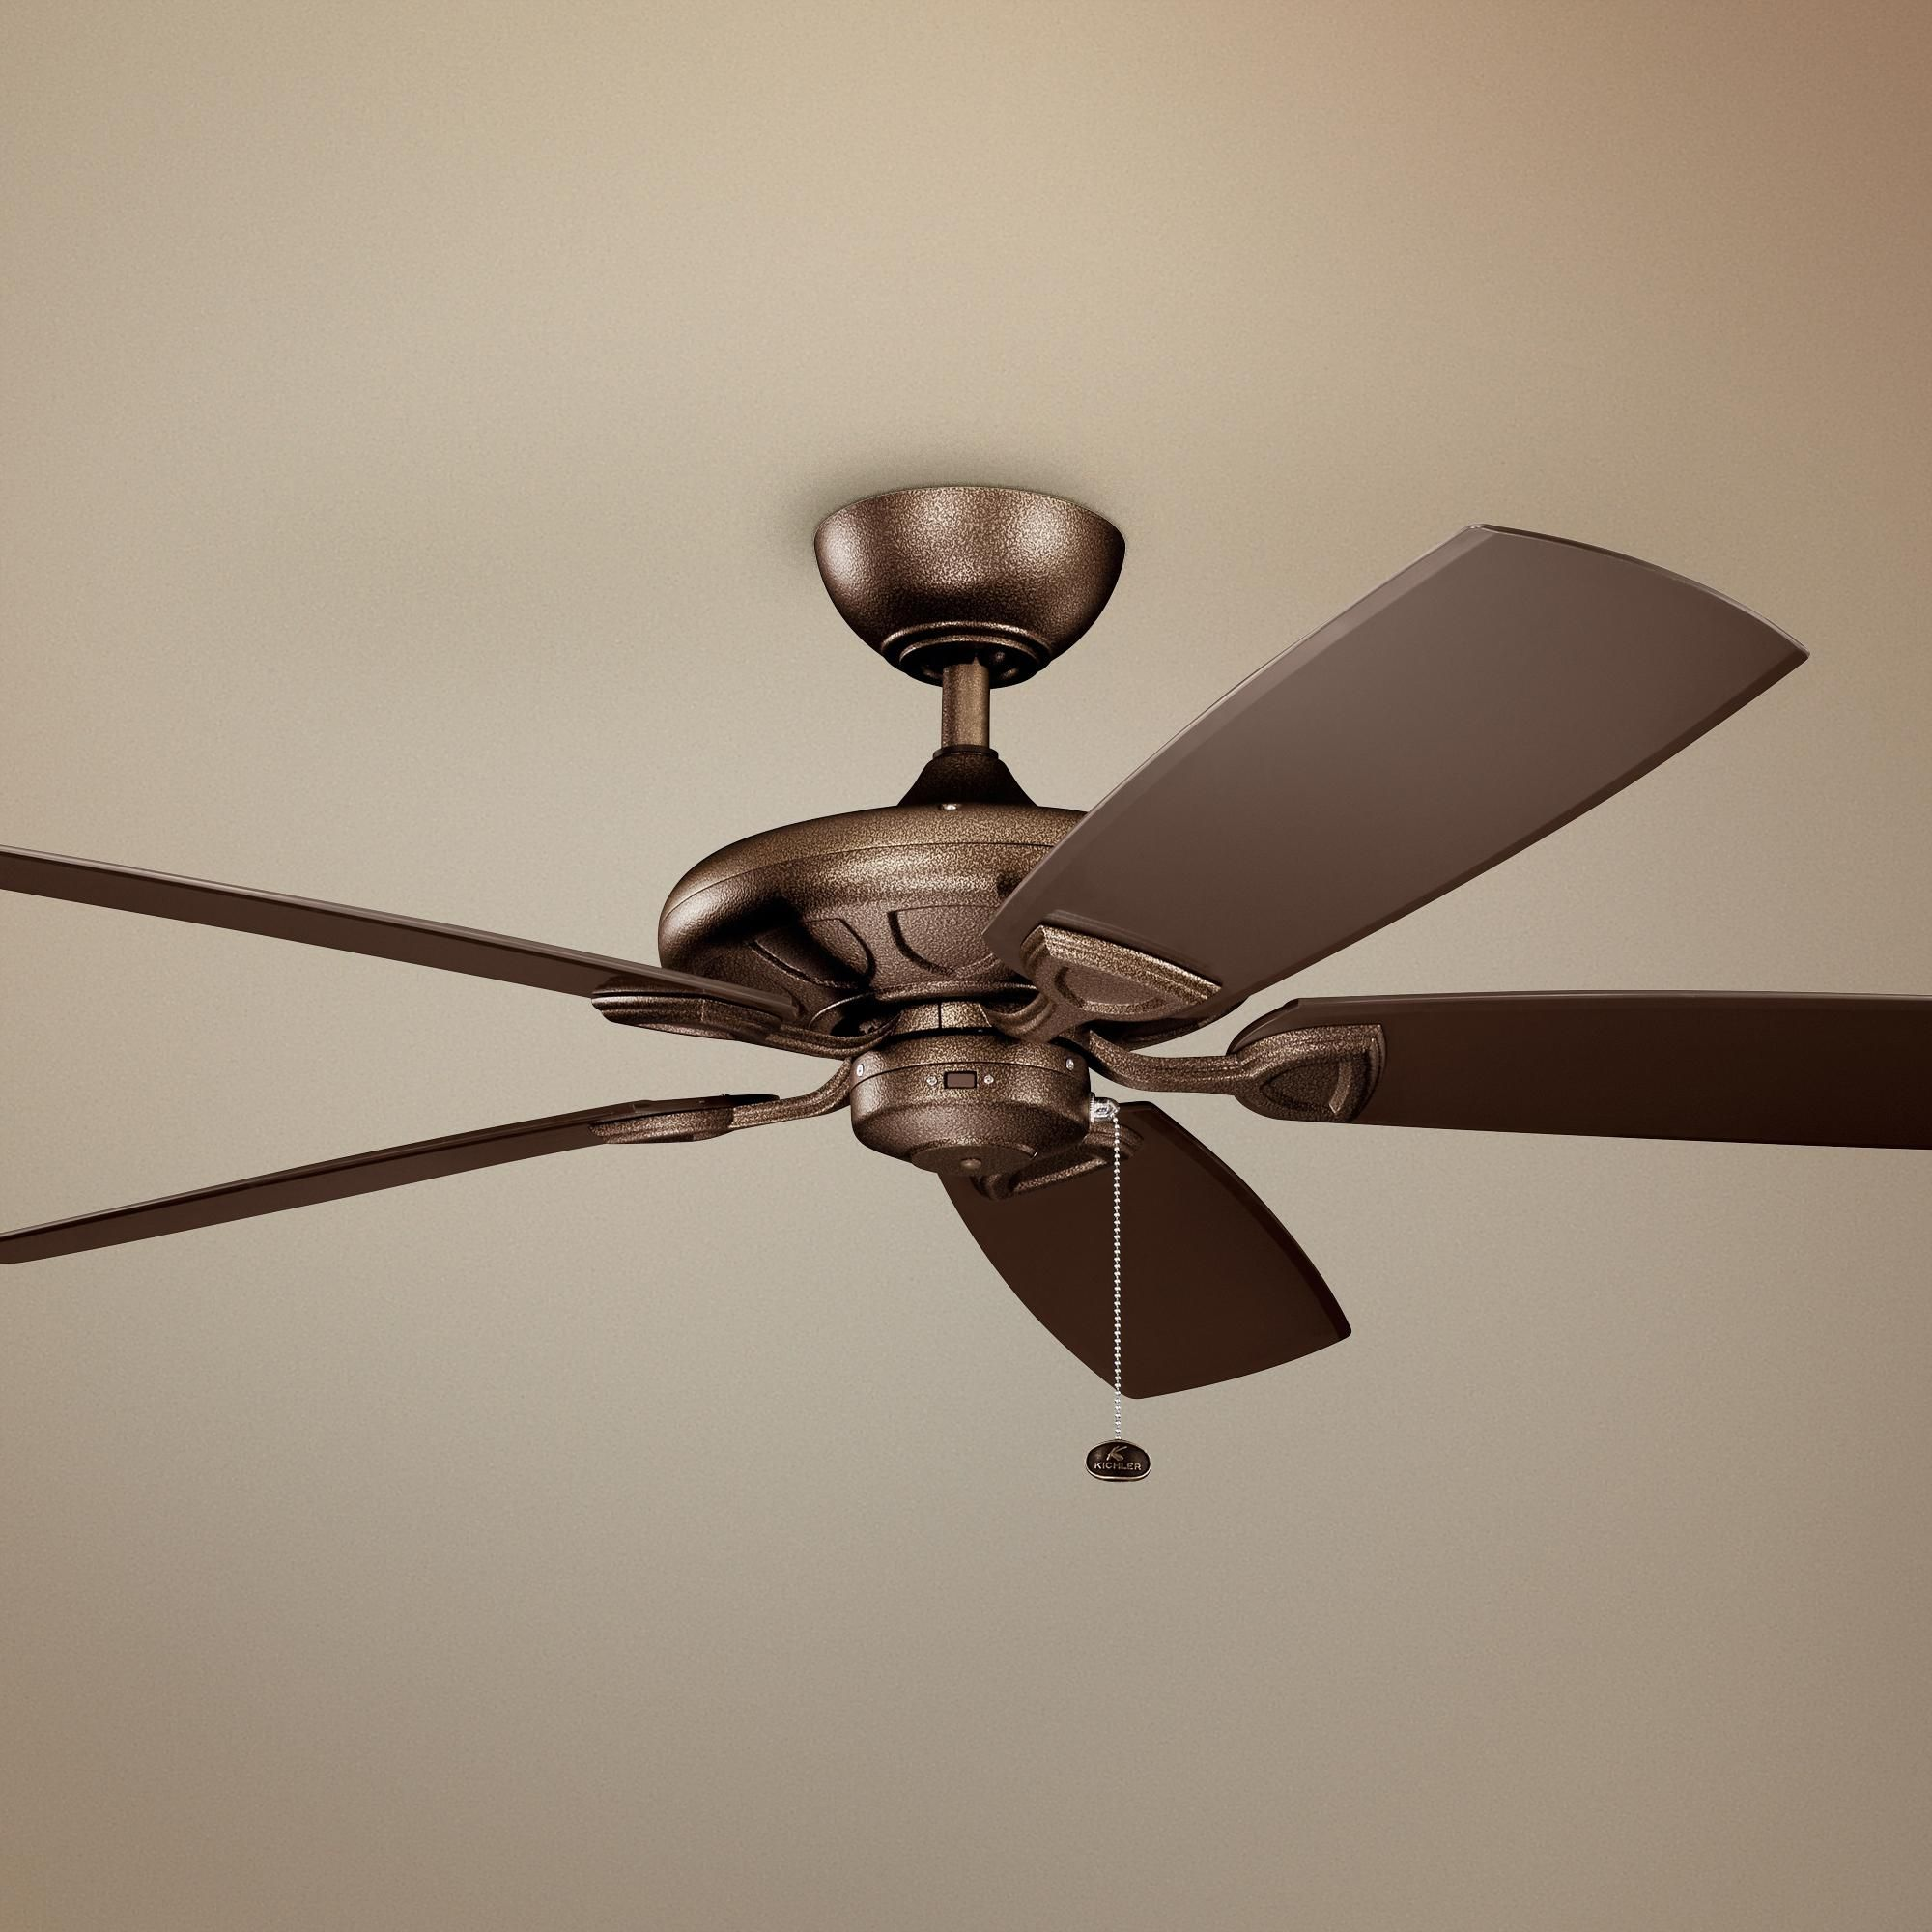 Craftmade Windswept Espresso 120 Inch Ceiling Fan Wnd120esp6 In 2020 Ceiling Fan Large Fan Ceiling